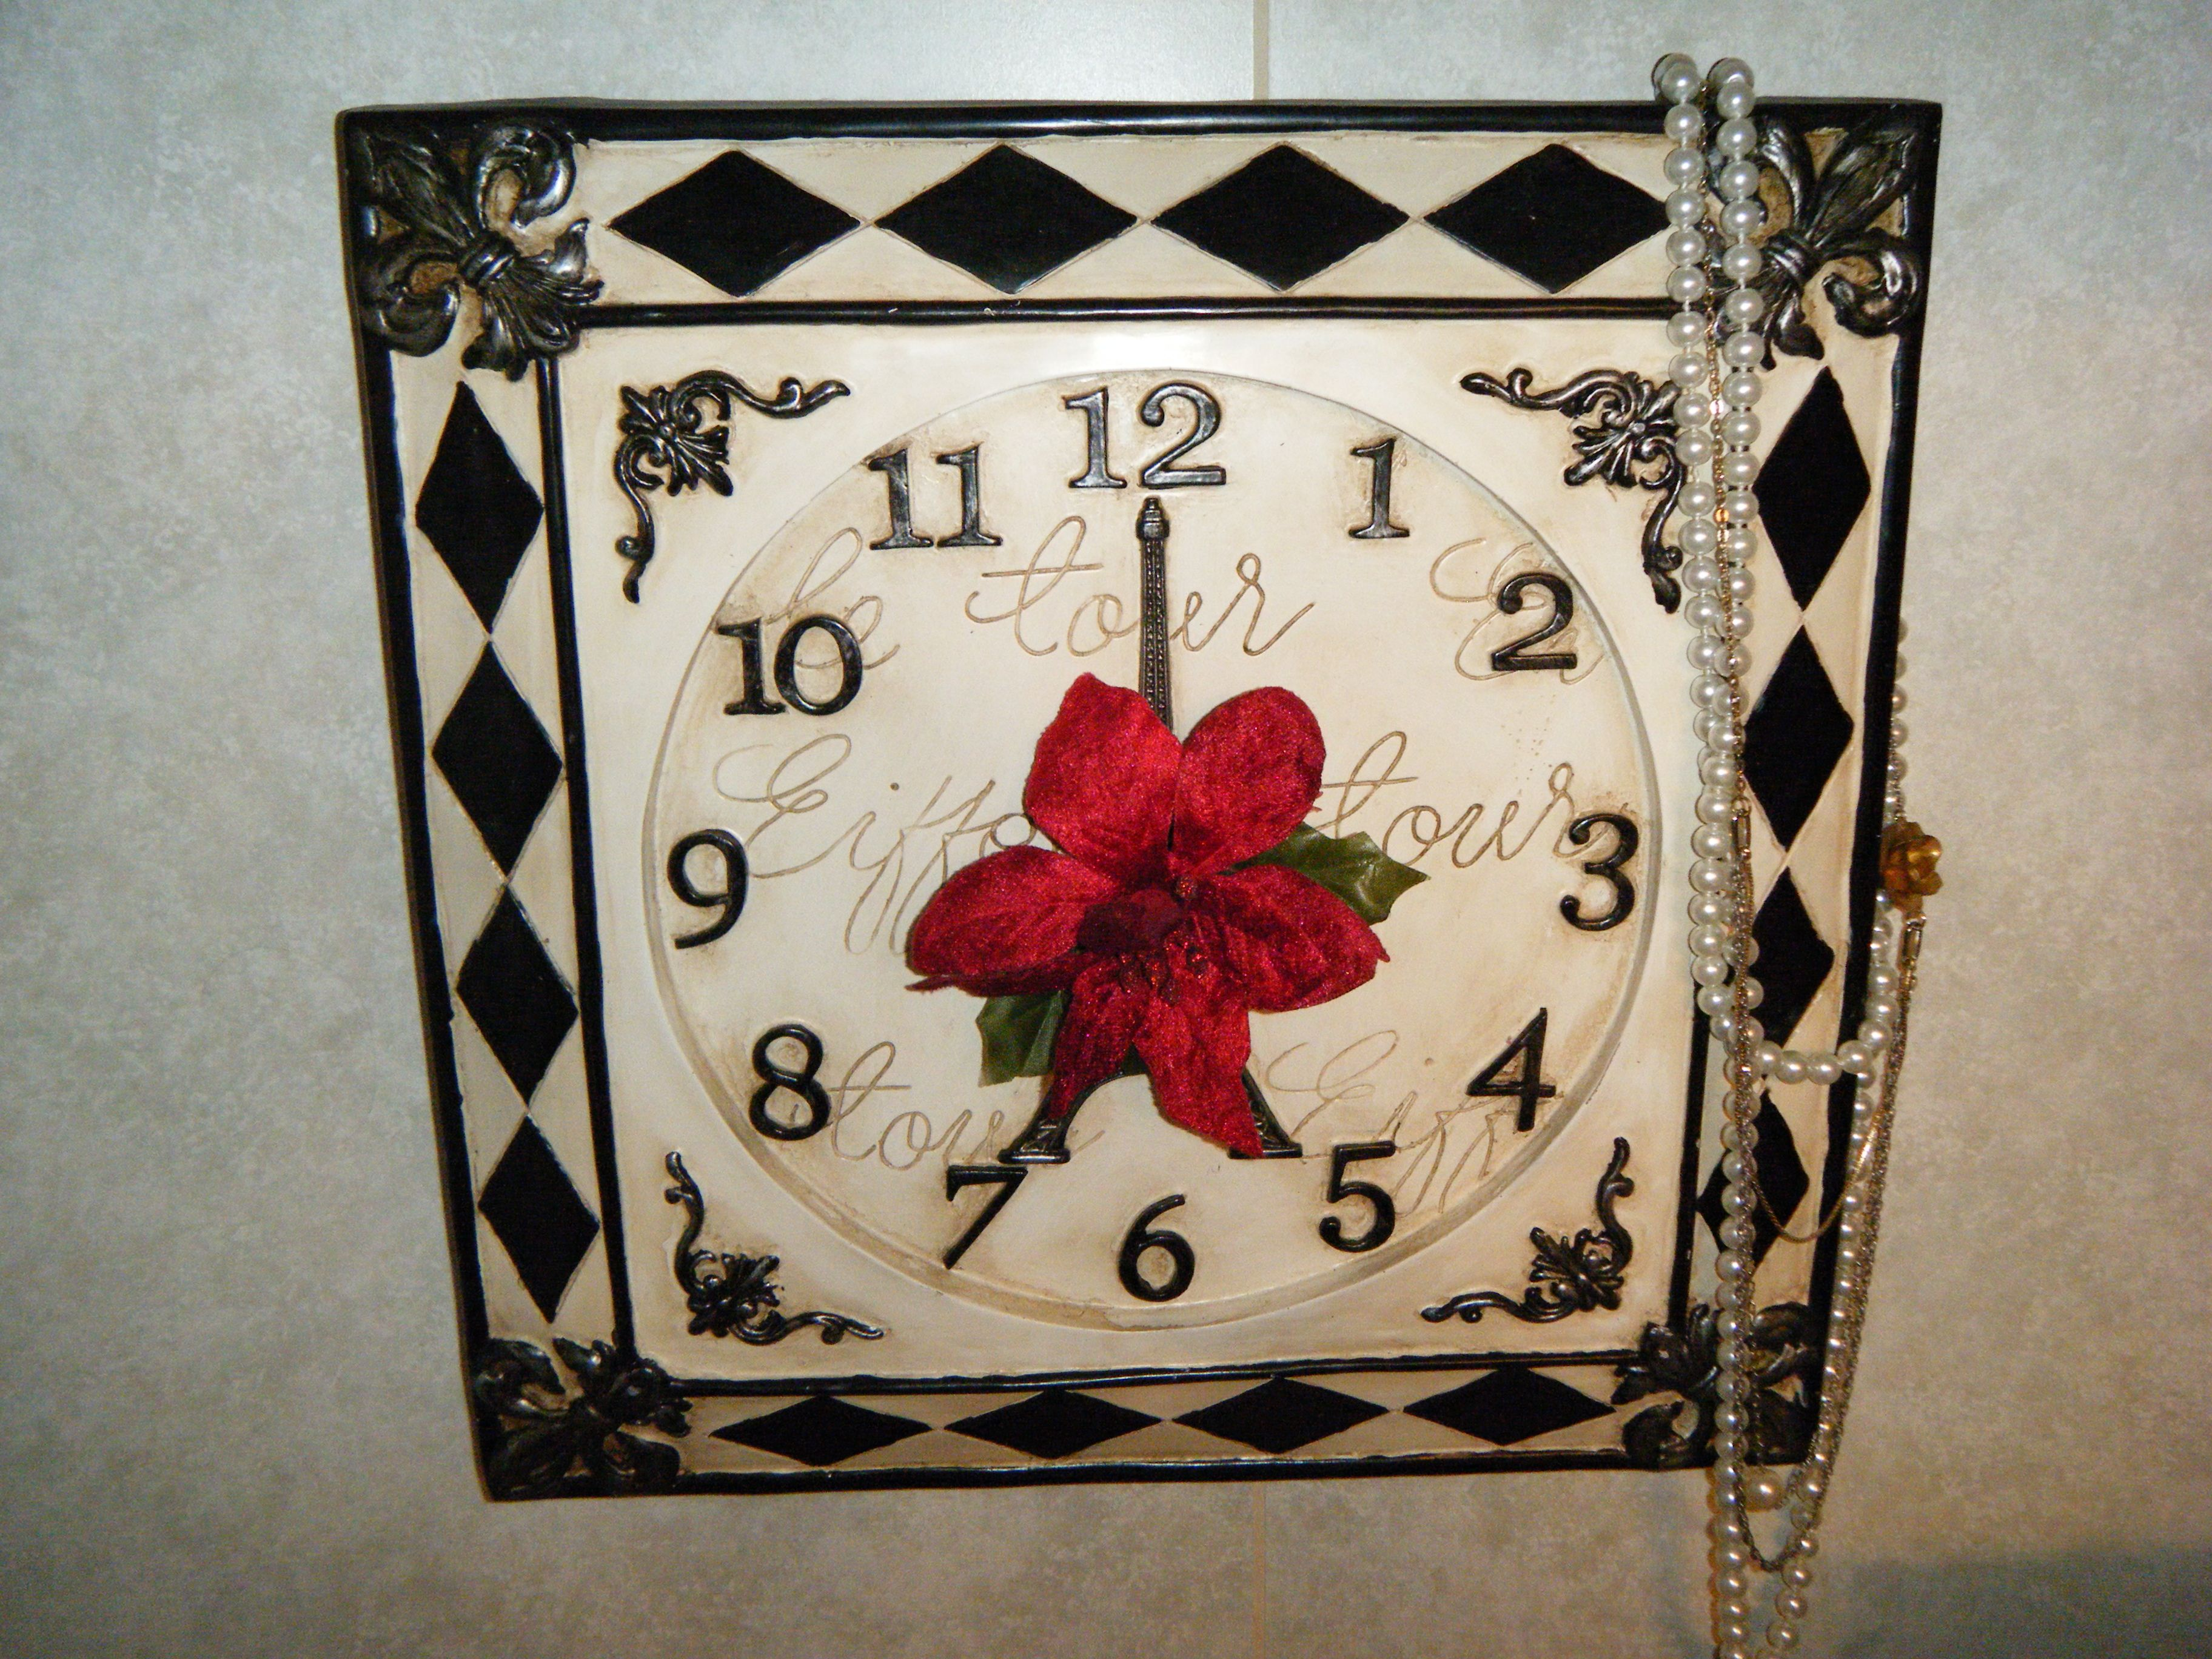 found this old clock at a yard sale awhile back, wasn't working of course so i added a few extra touches to make it my own and I love it!